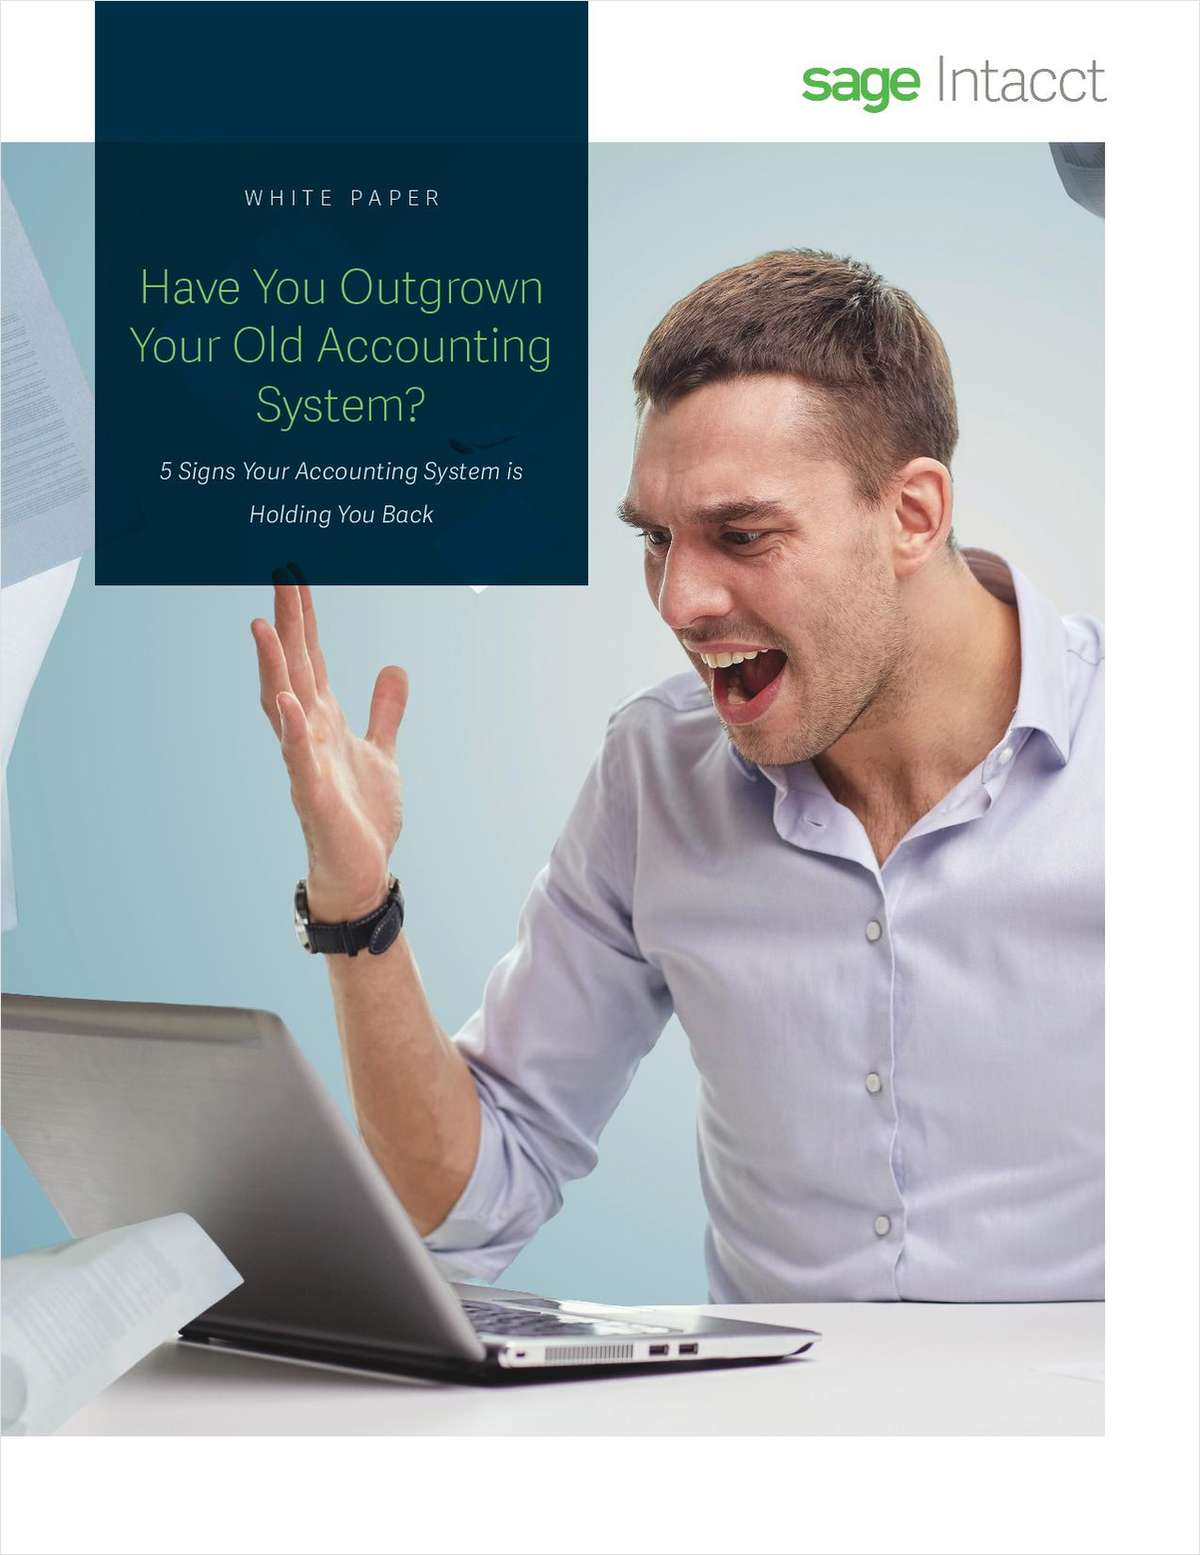 Five Signs You've Outgrown Your Accounting System